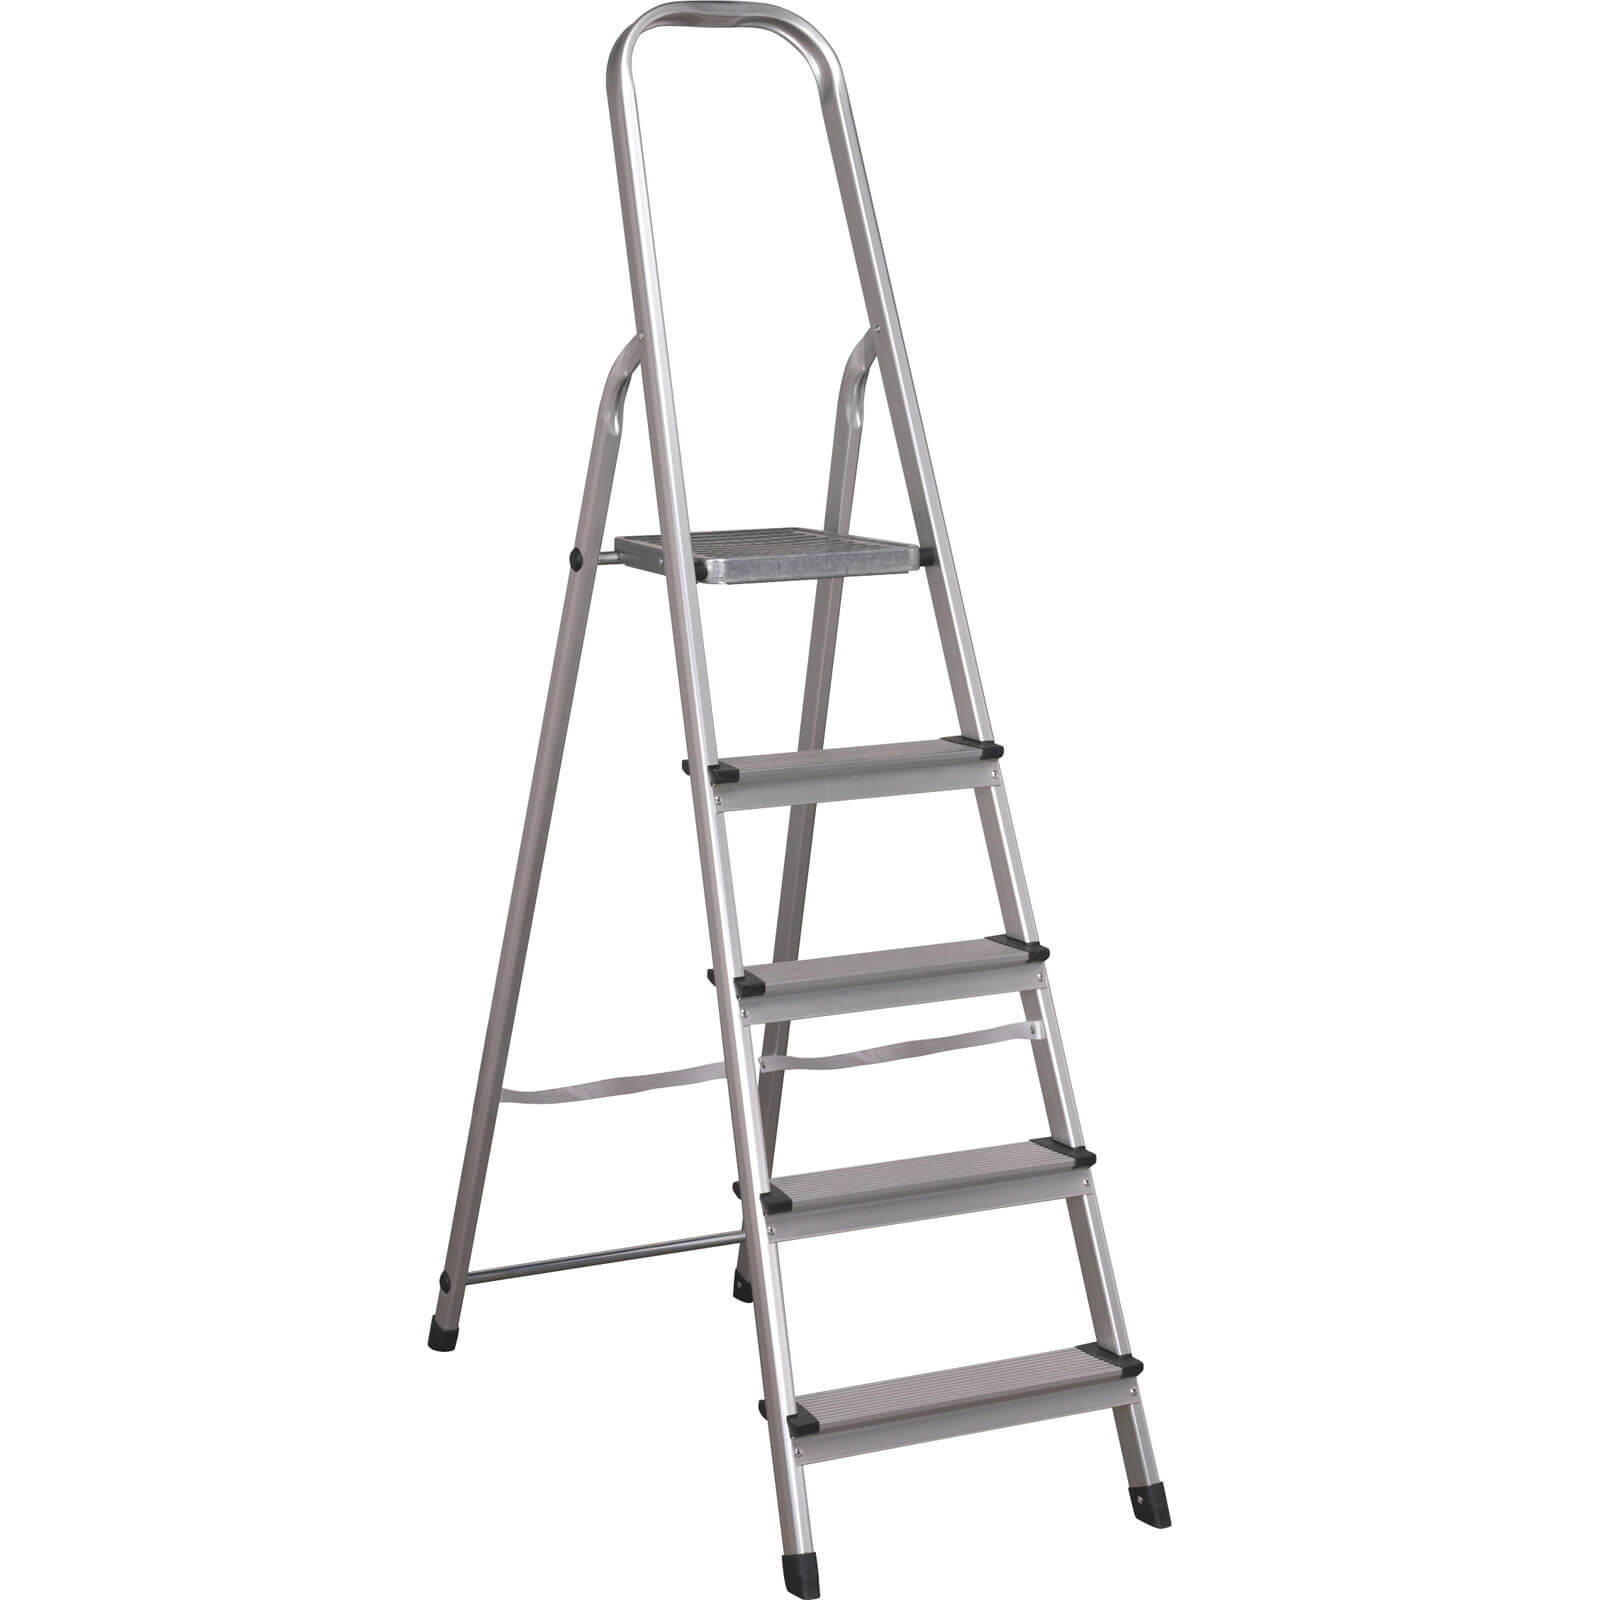 Sealey Trade Aluminium Platform Step Ladder 5